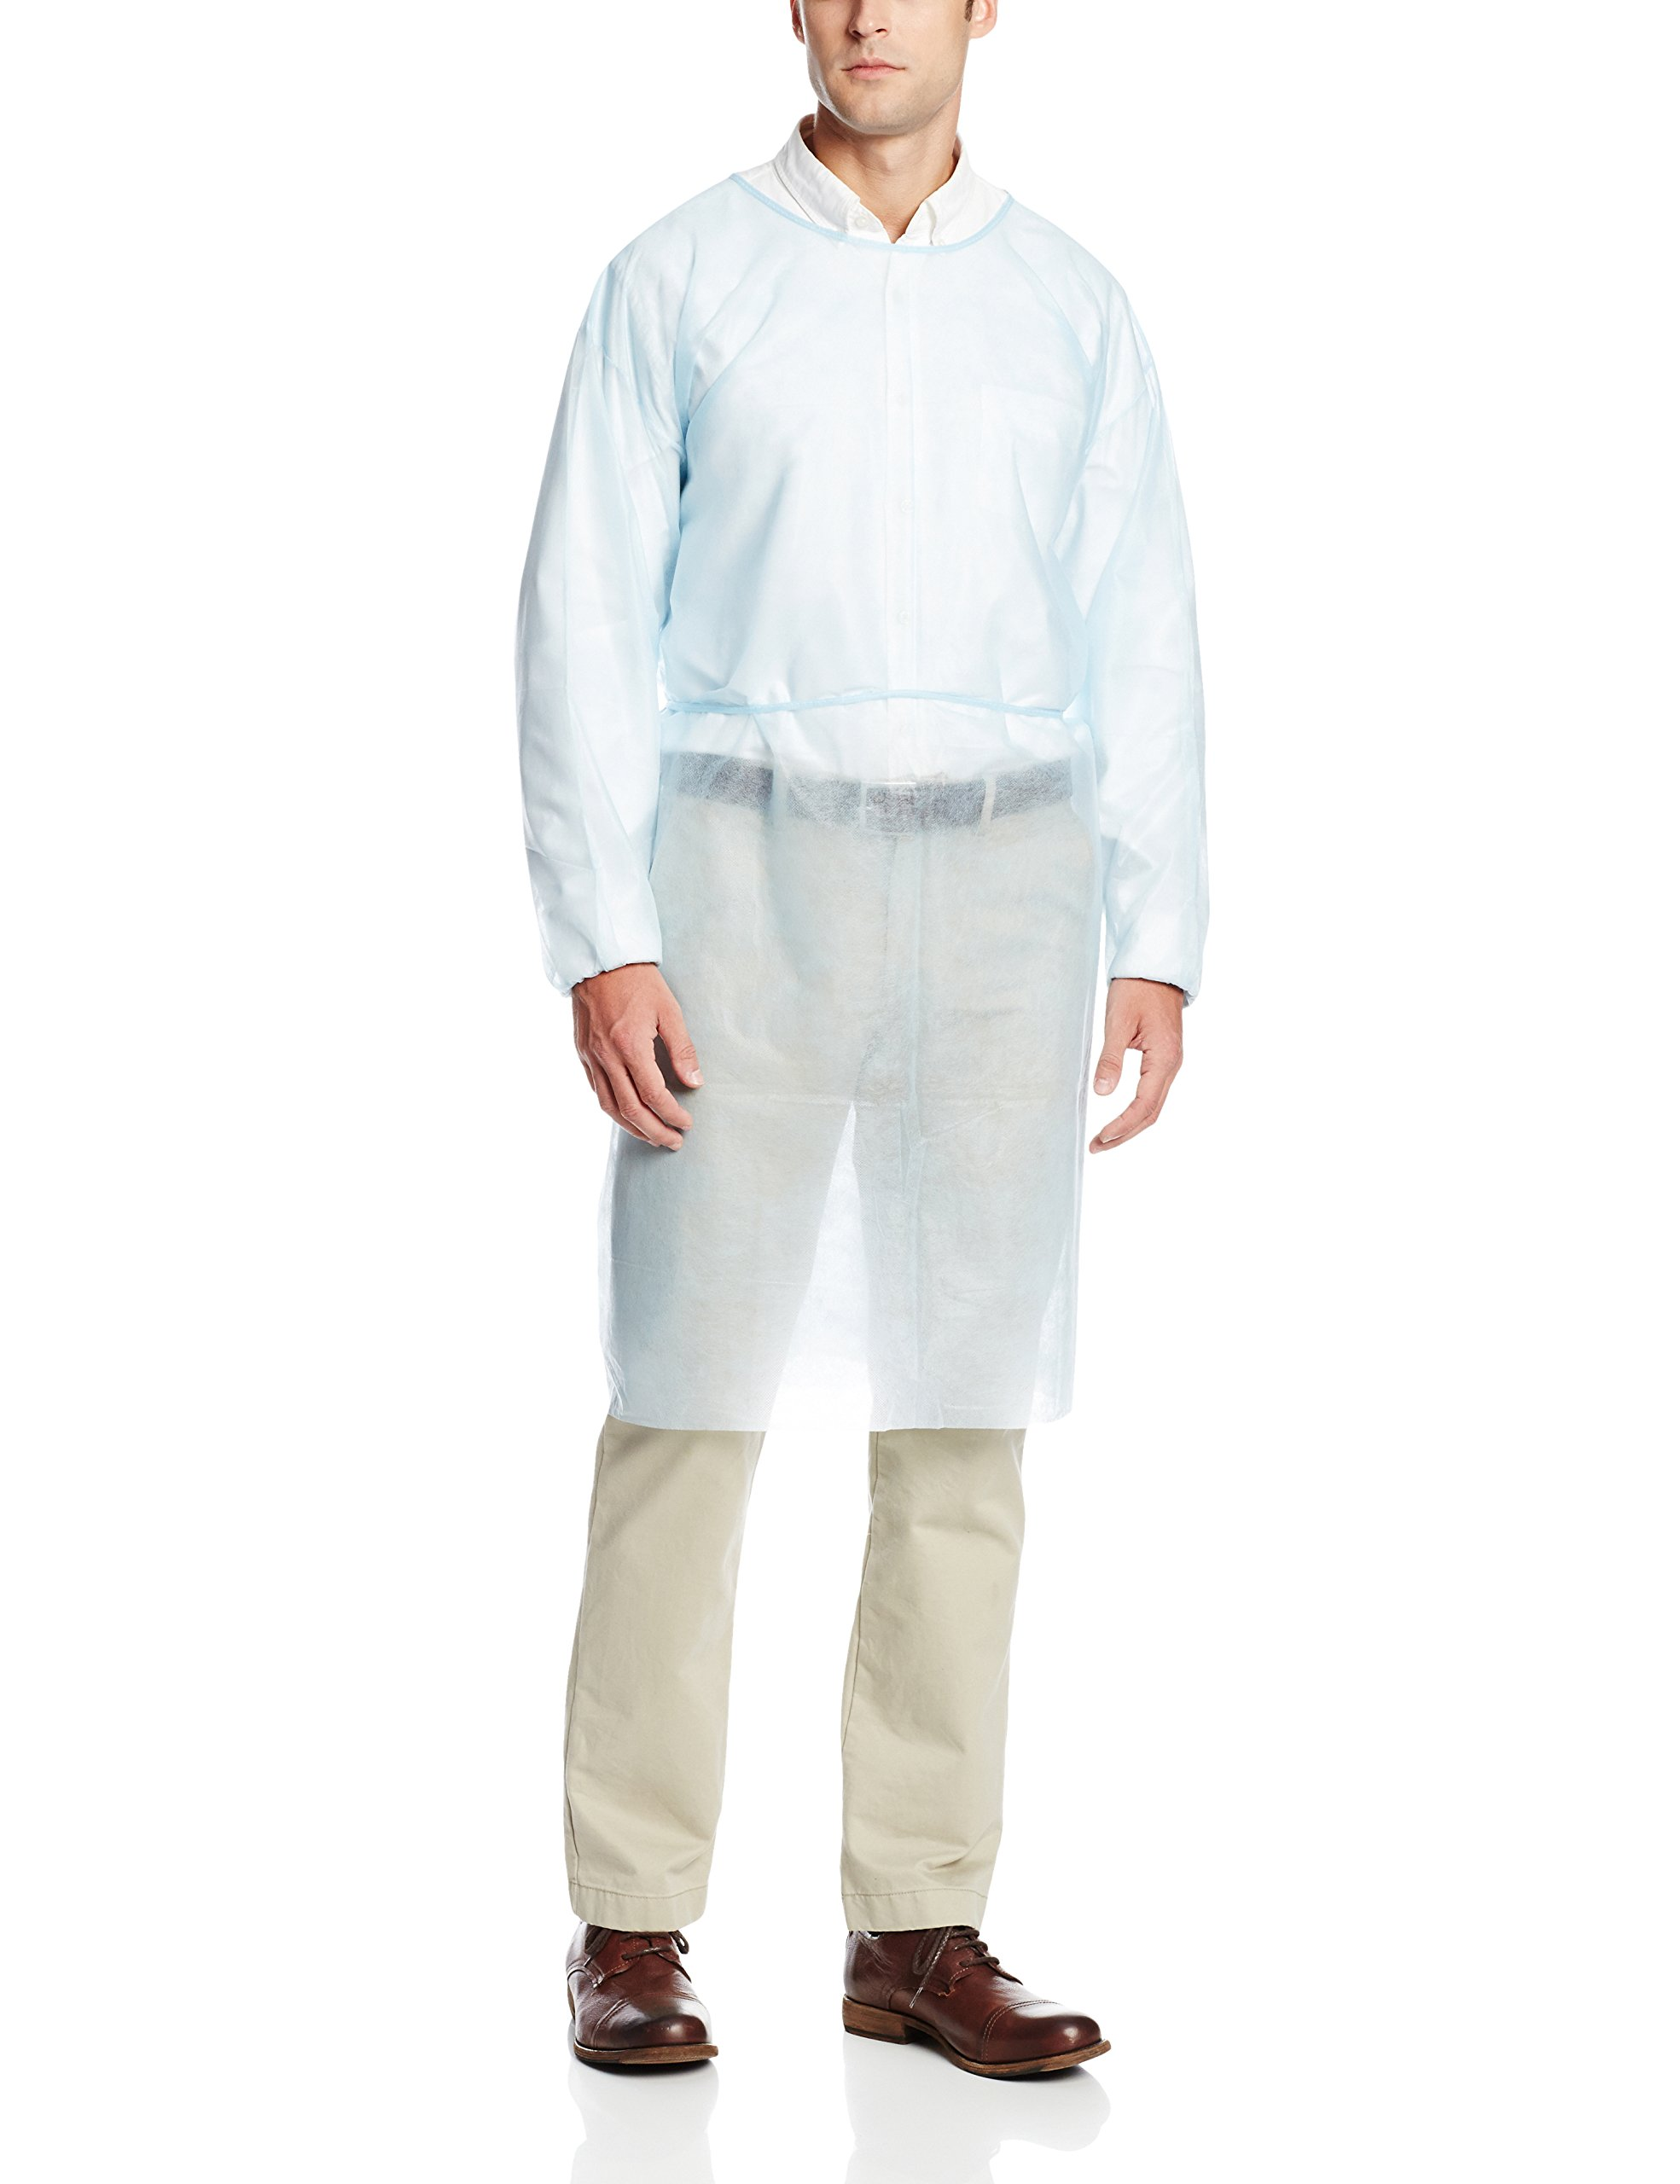 ValuMax 3230B Disposable Isolation Gown, Elastic Cuff, Tie Back, Knee Length, Splash Resistant, Blue, Regular Size, Case of 50